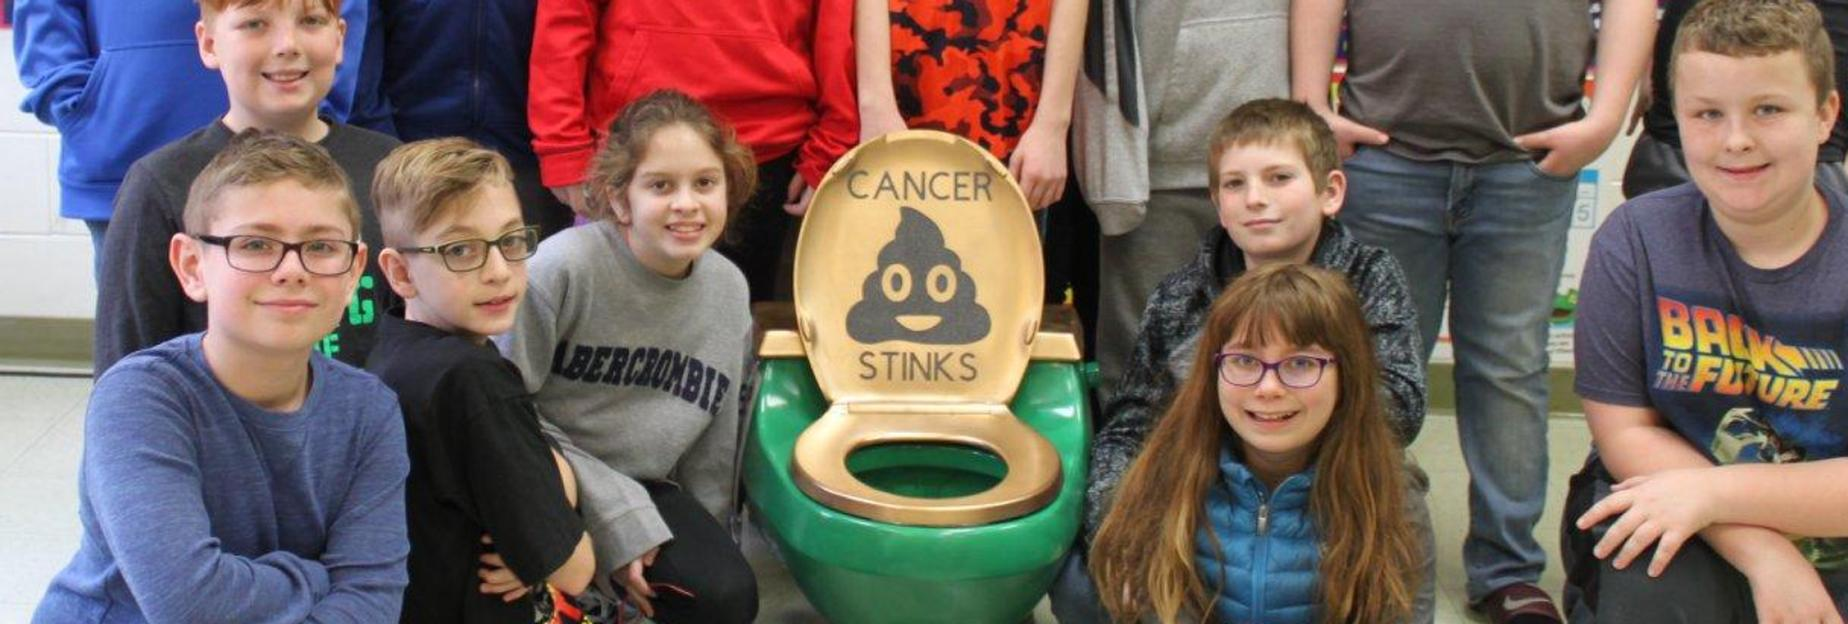 Students in group supporting Cancer Treatment